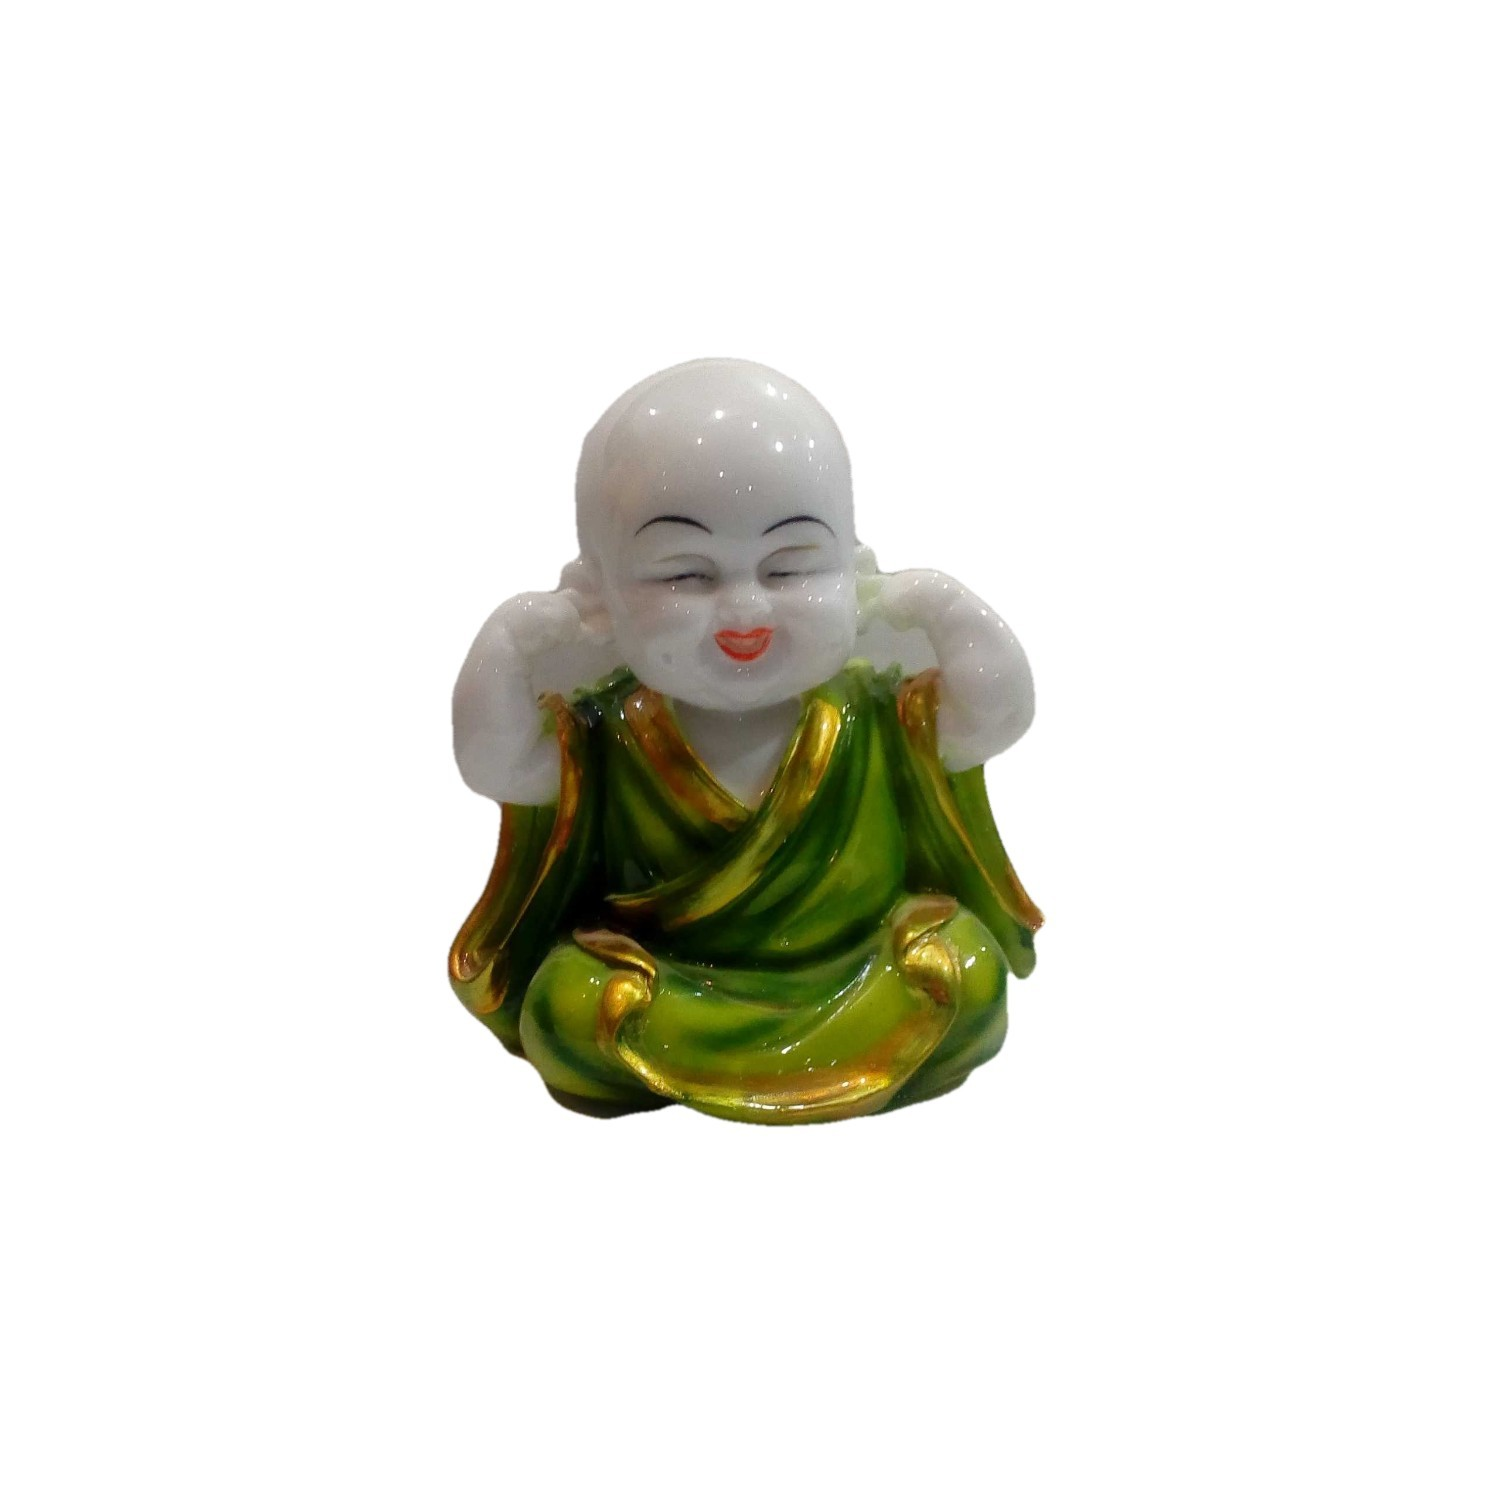 Handmade Excellent Green Marble Art Laughing Buddha Ji Showpiece  by Awarded Indian Rural Artisan